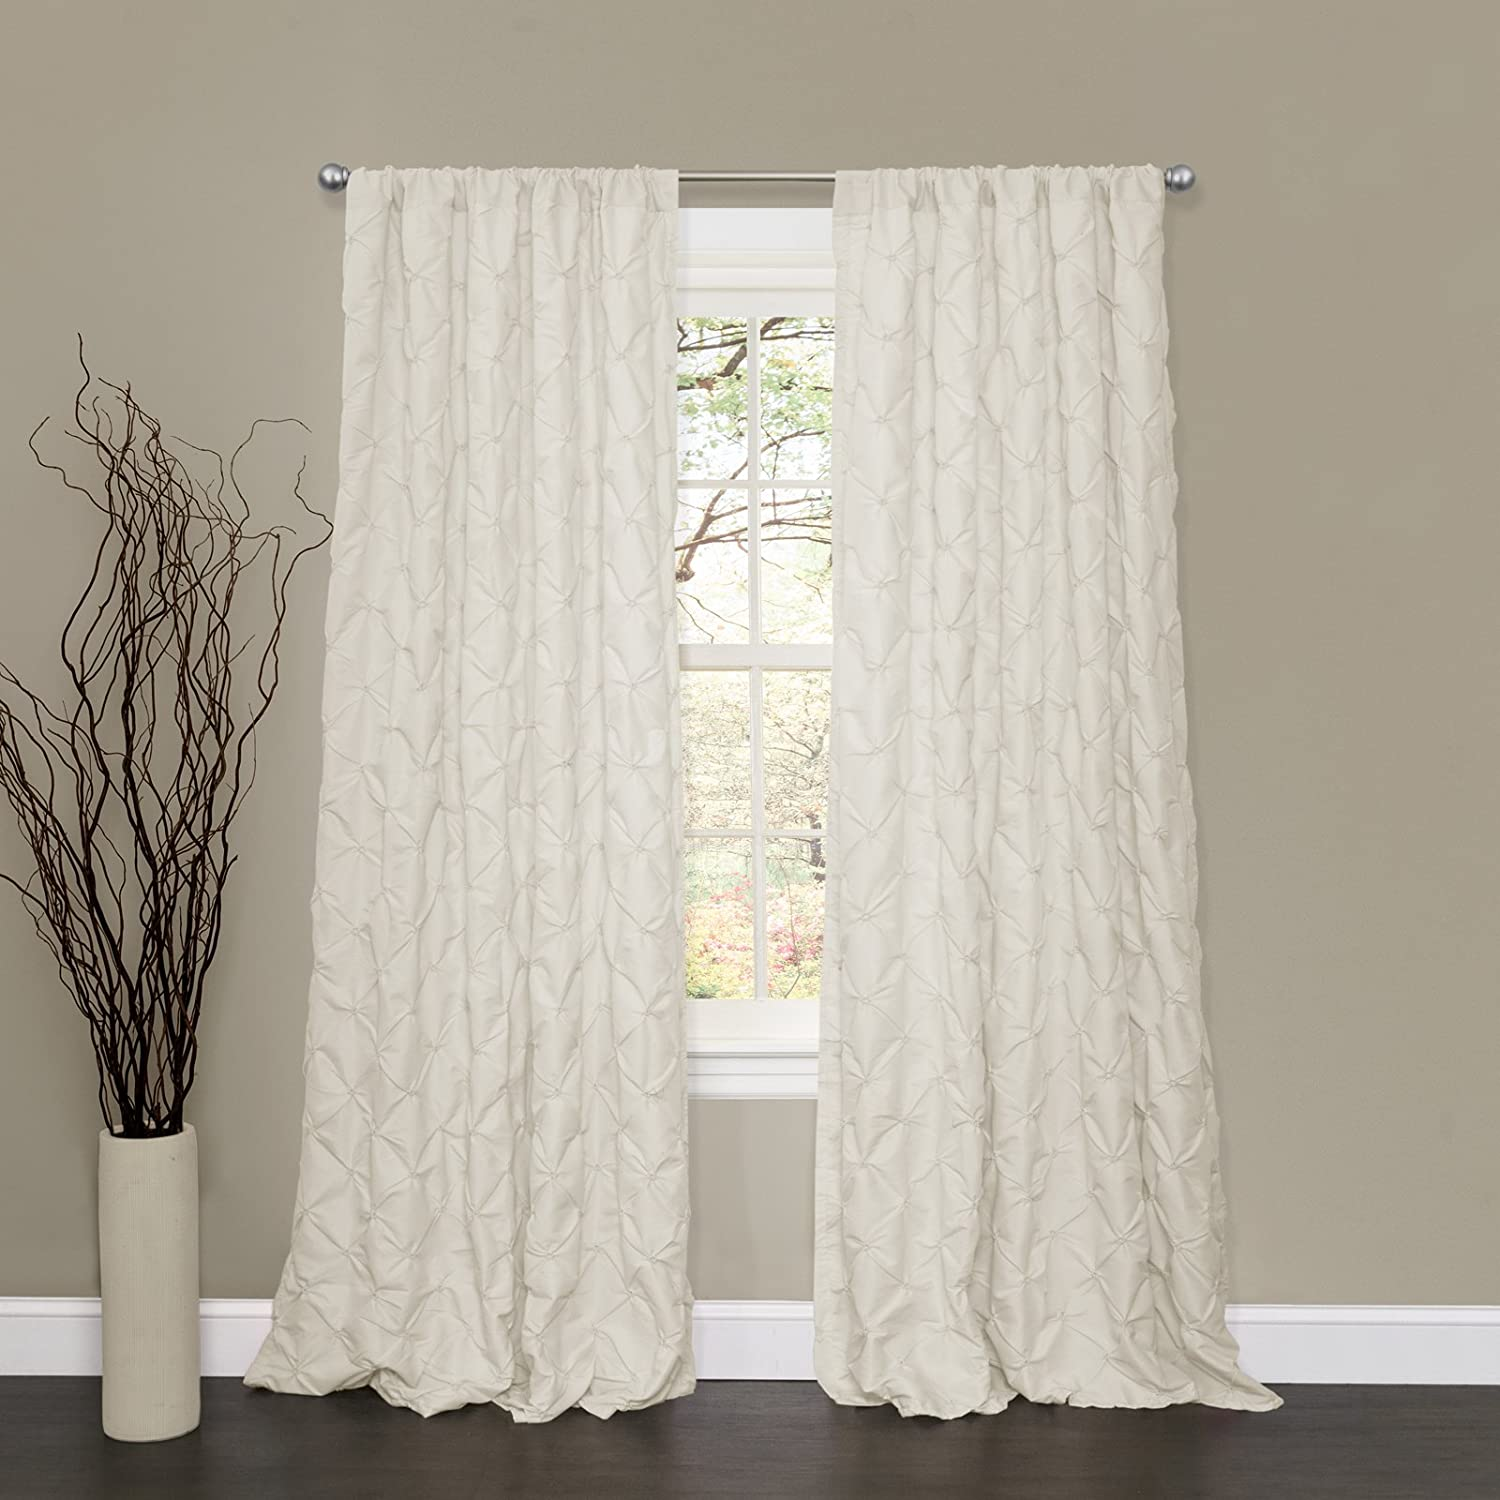 sheer tier workshop dotted in white sturbridge curtains collection ivory yankee shier drapes curtain shown